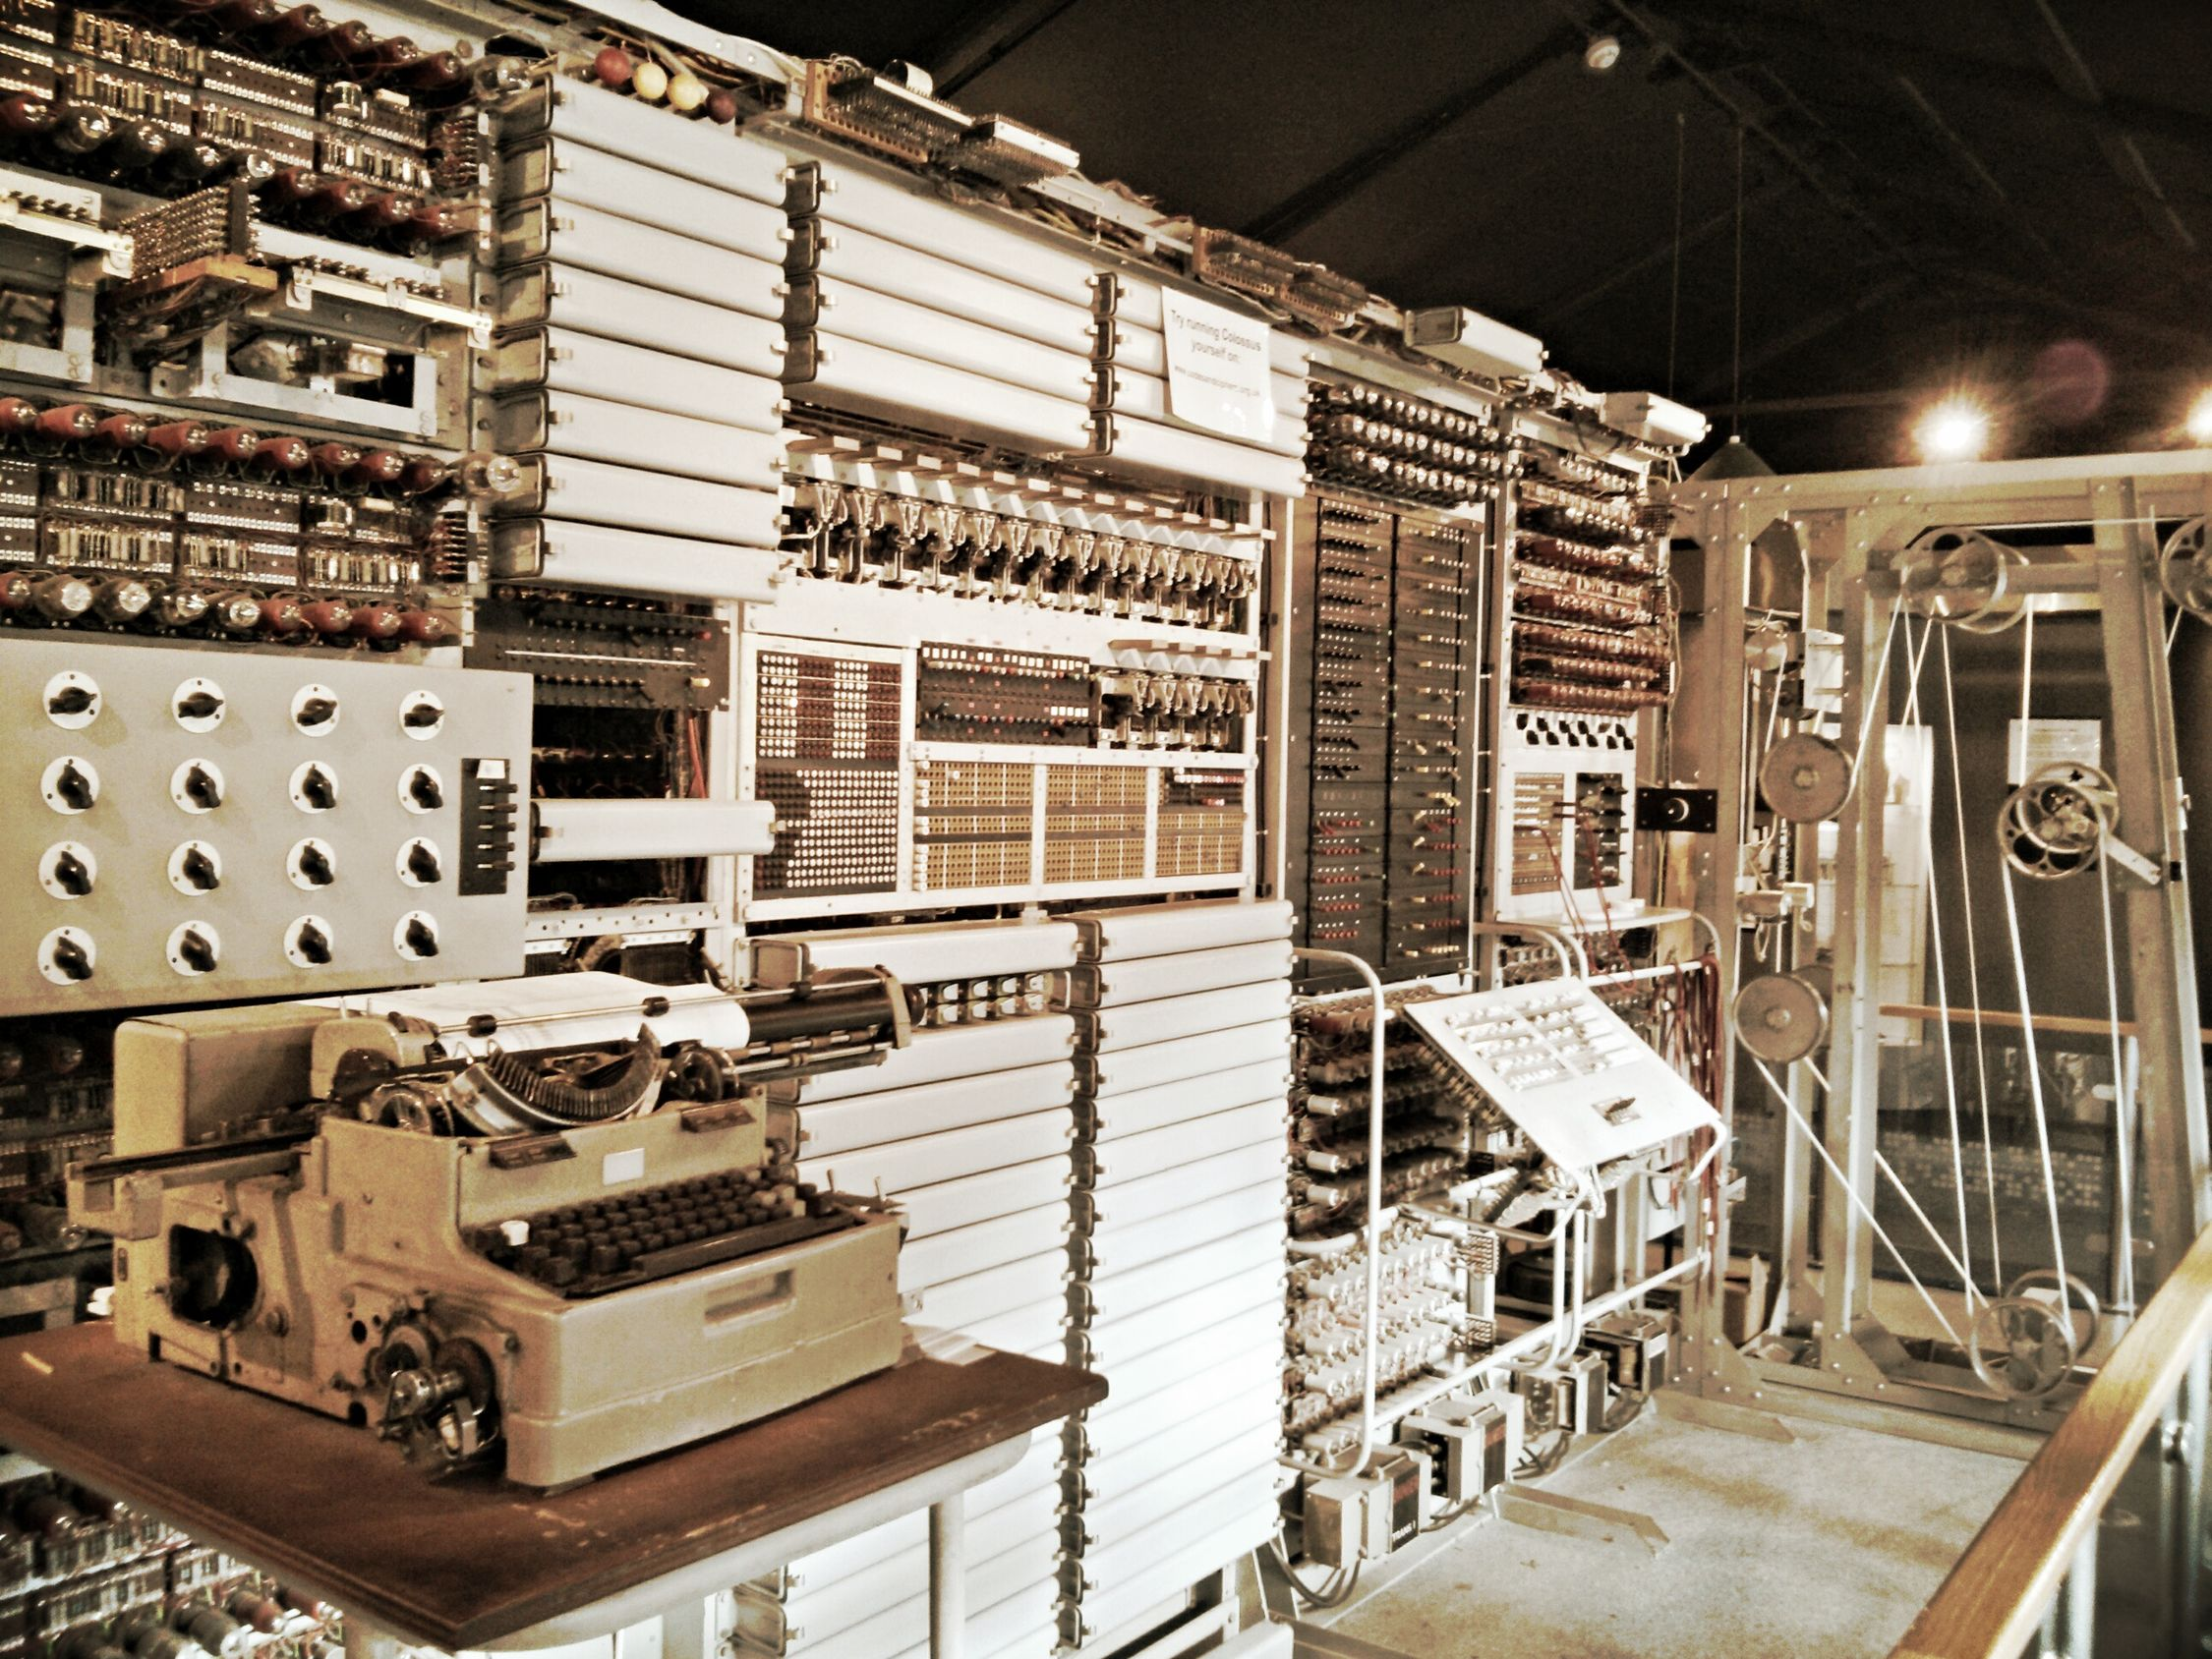 Colossus, first electronic computer in the world.